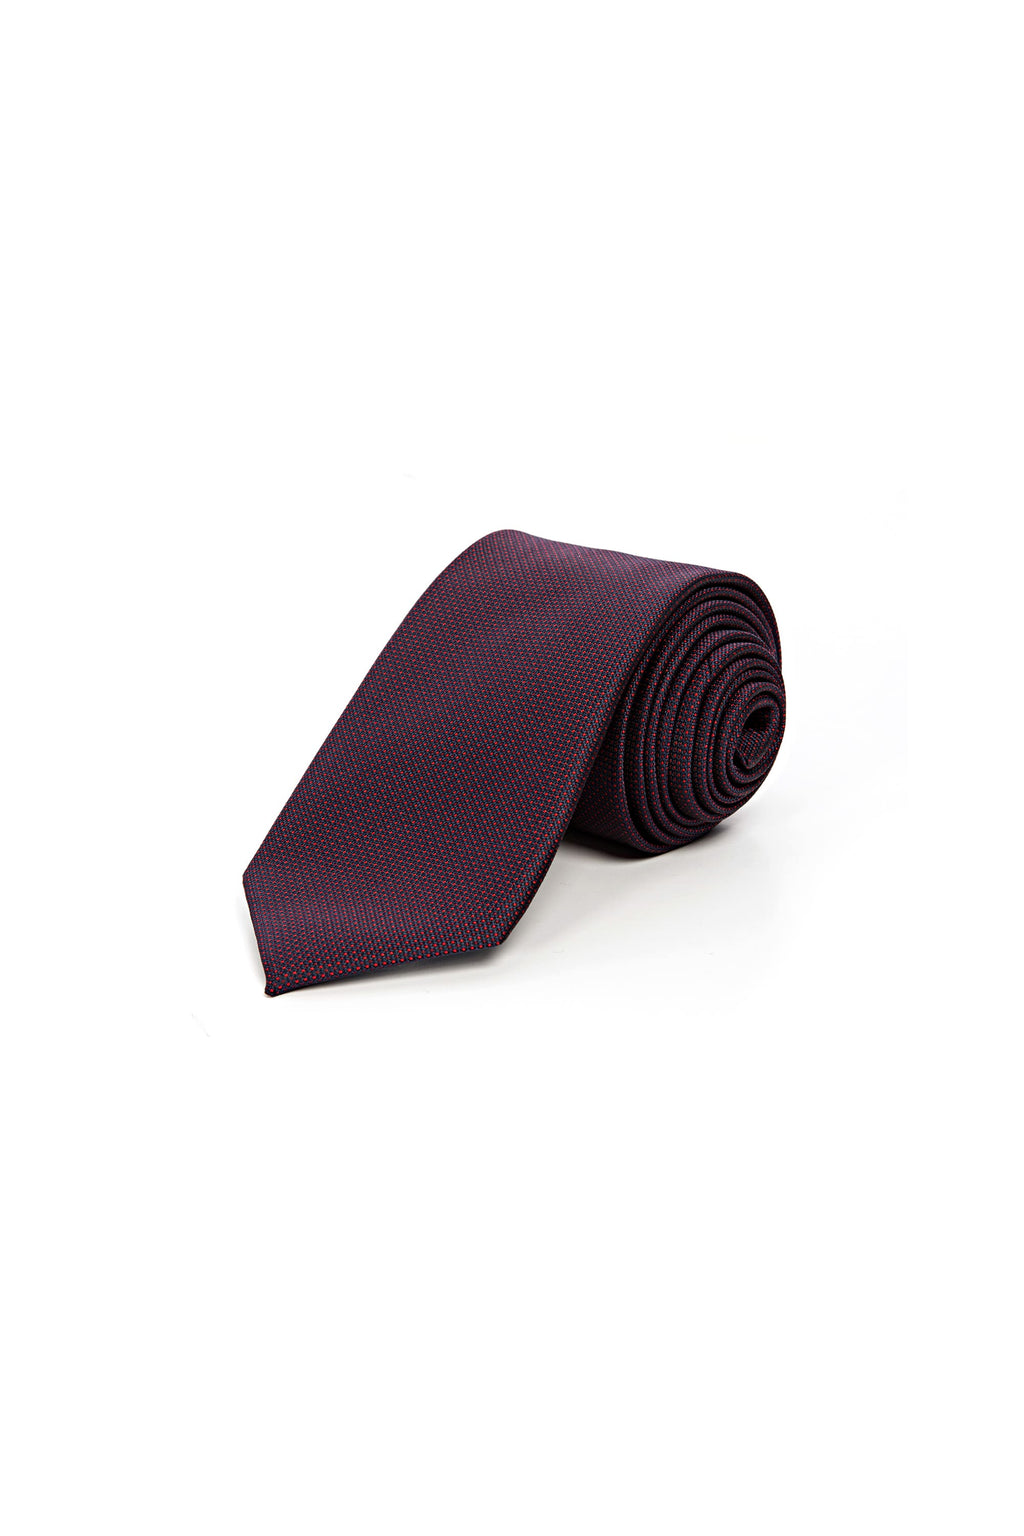 Romano Botta Bordeaux Silk Touch Tie